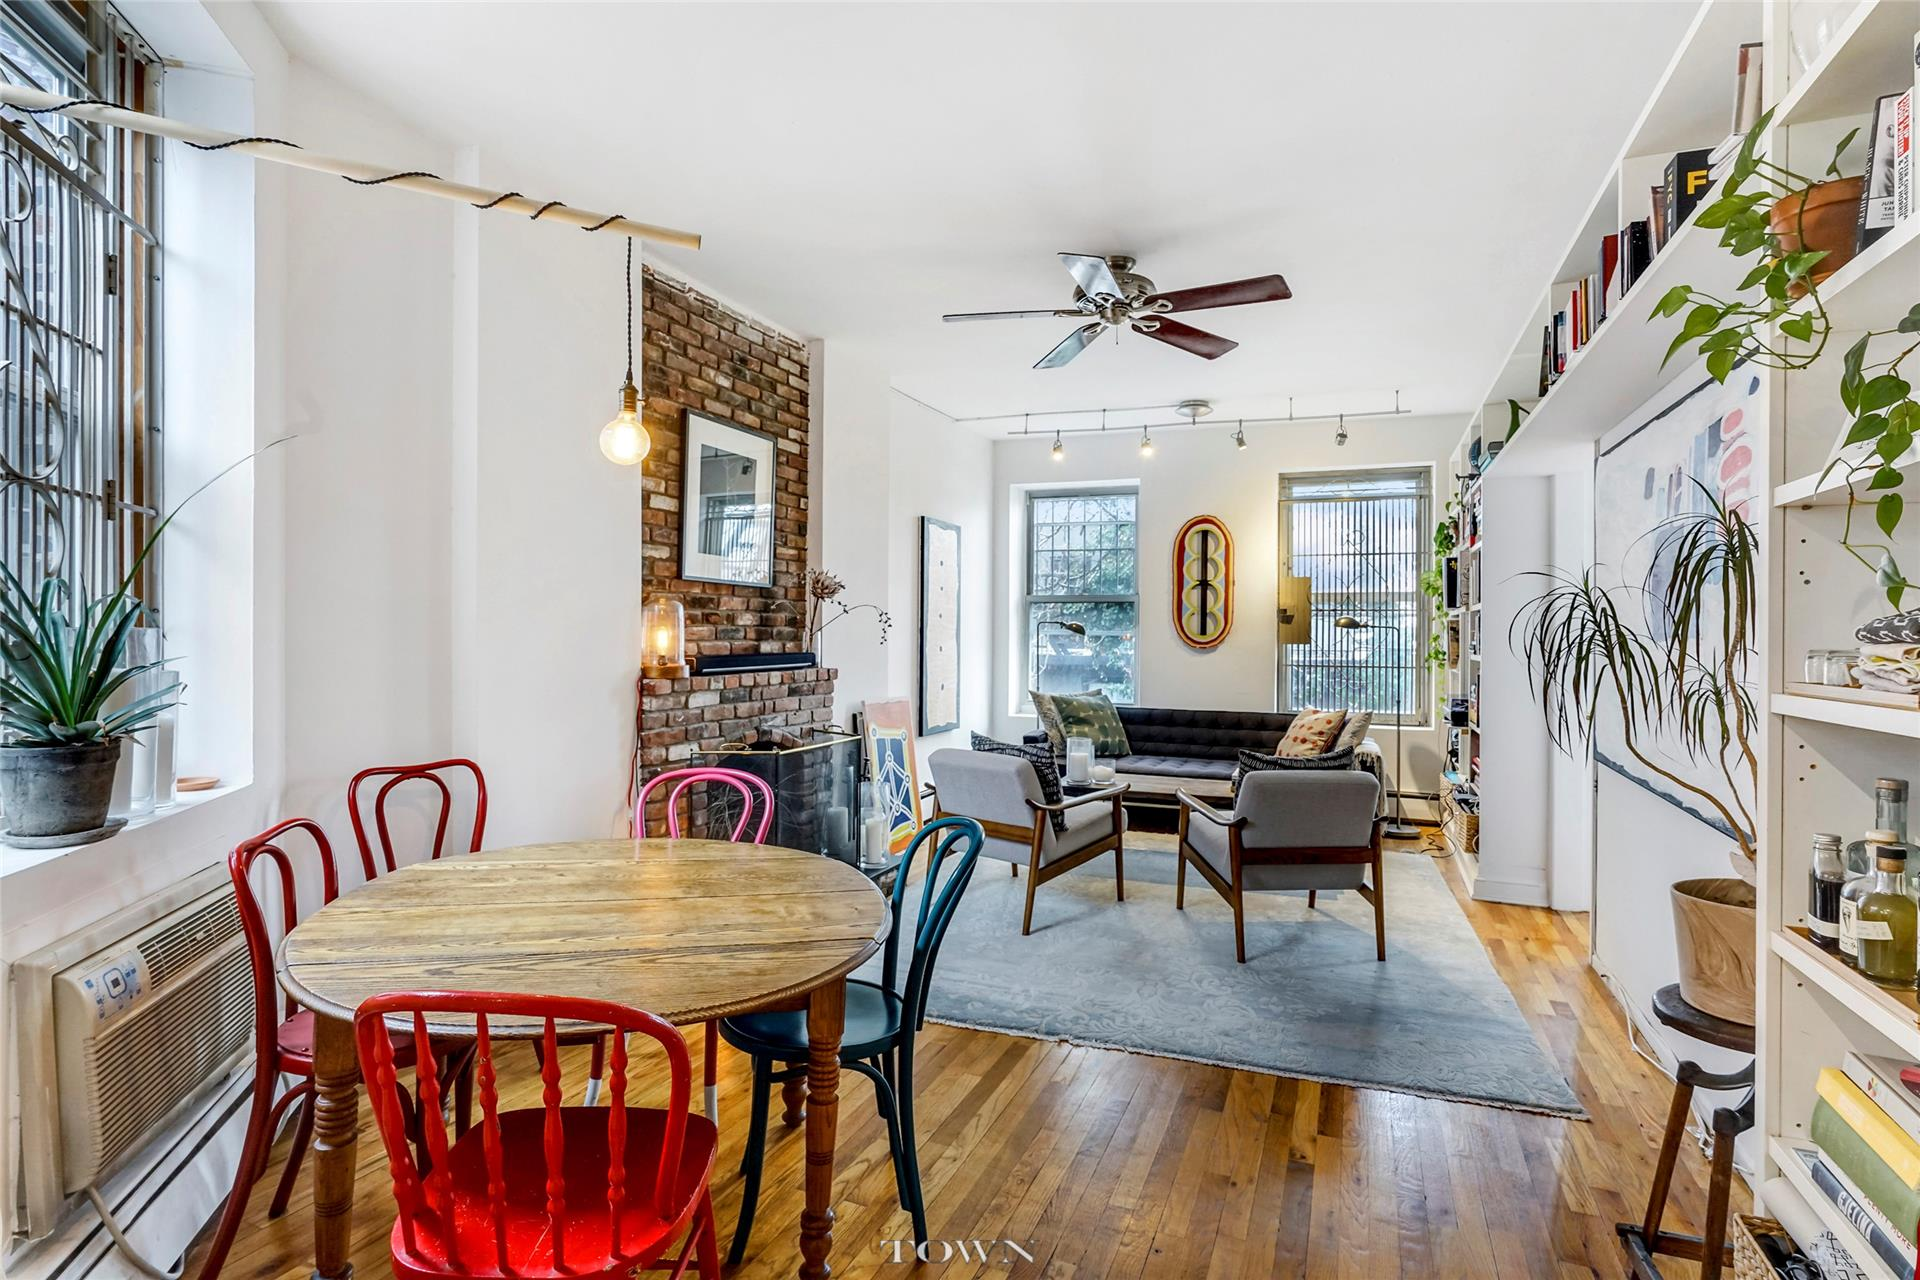 Co-op for Rent at 518 East 11th Street, #5-B 518 East 11th Street New York, New York 10009 United States